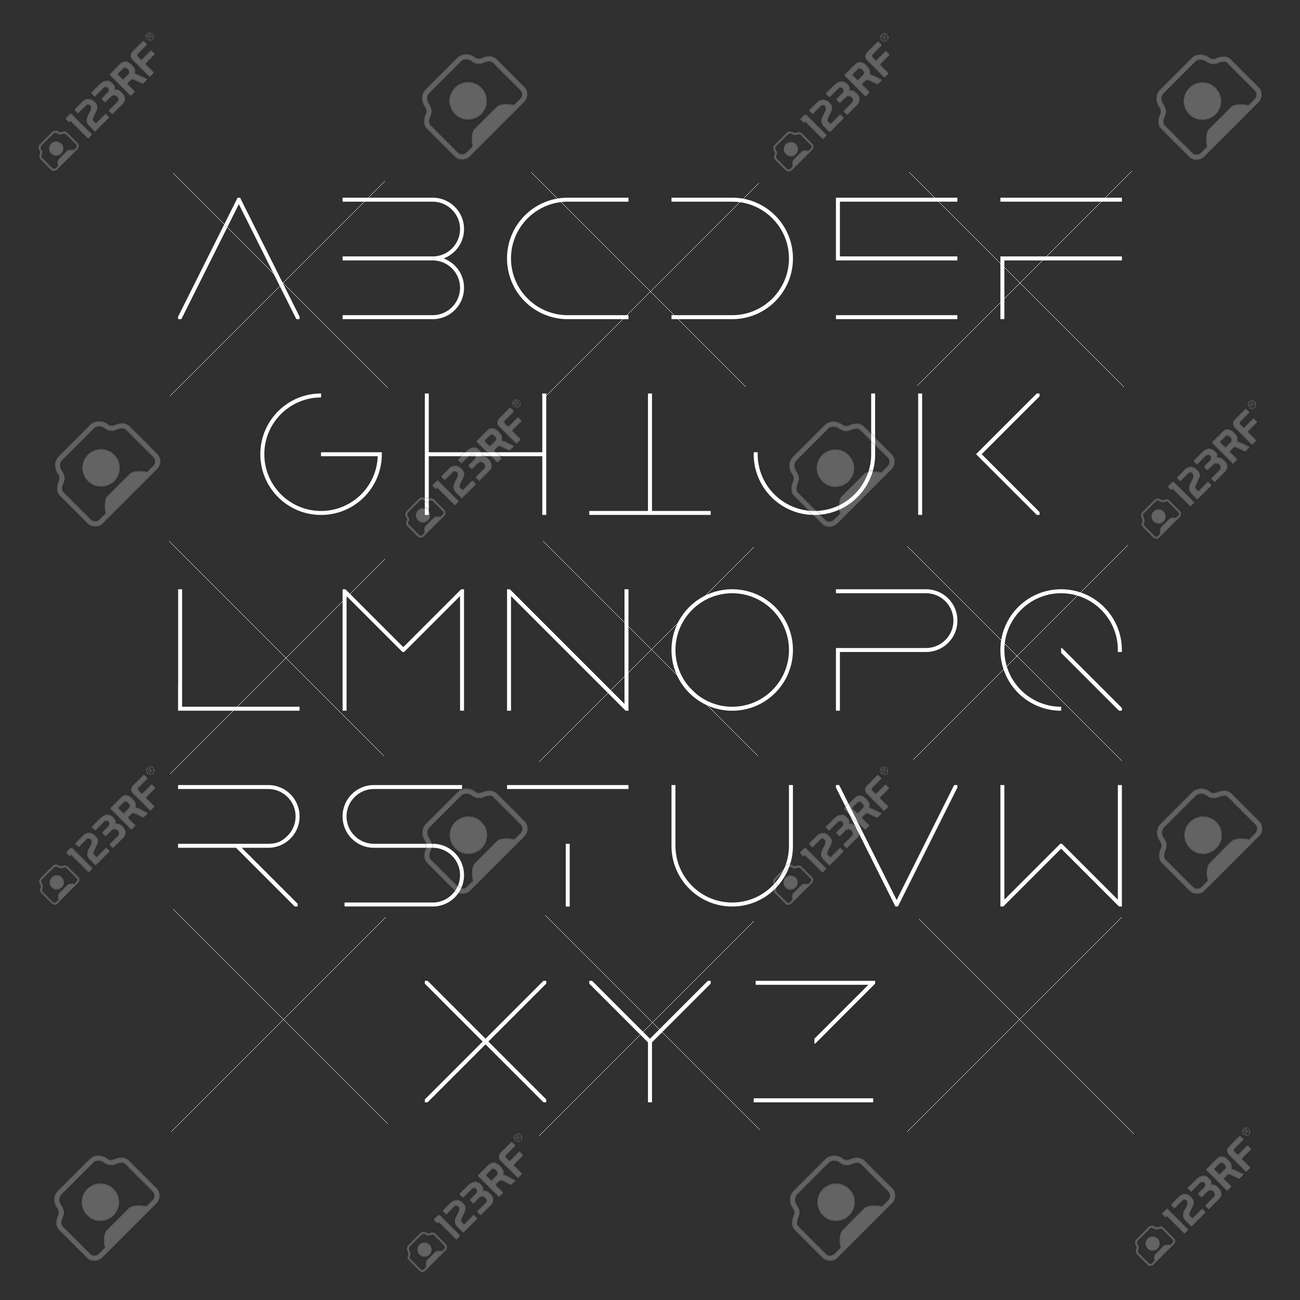 Extra Thin Line Style Linear Uppercase Modern Font Typeface